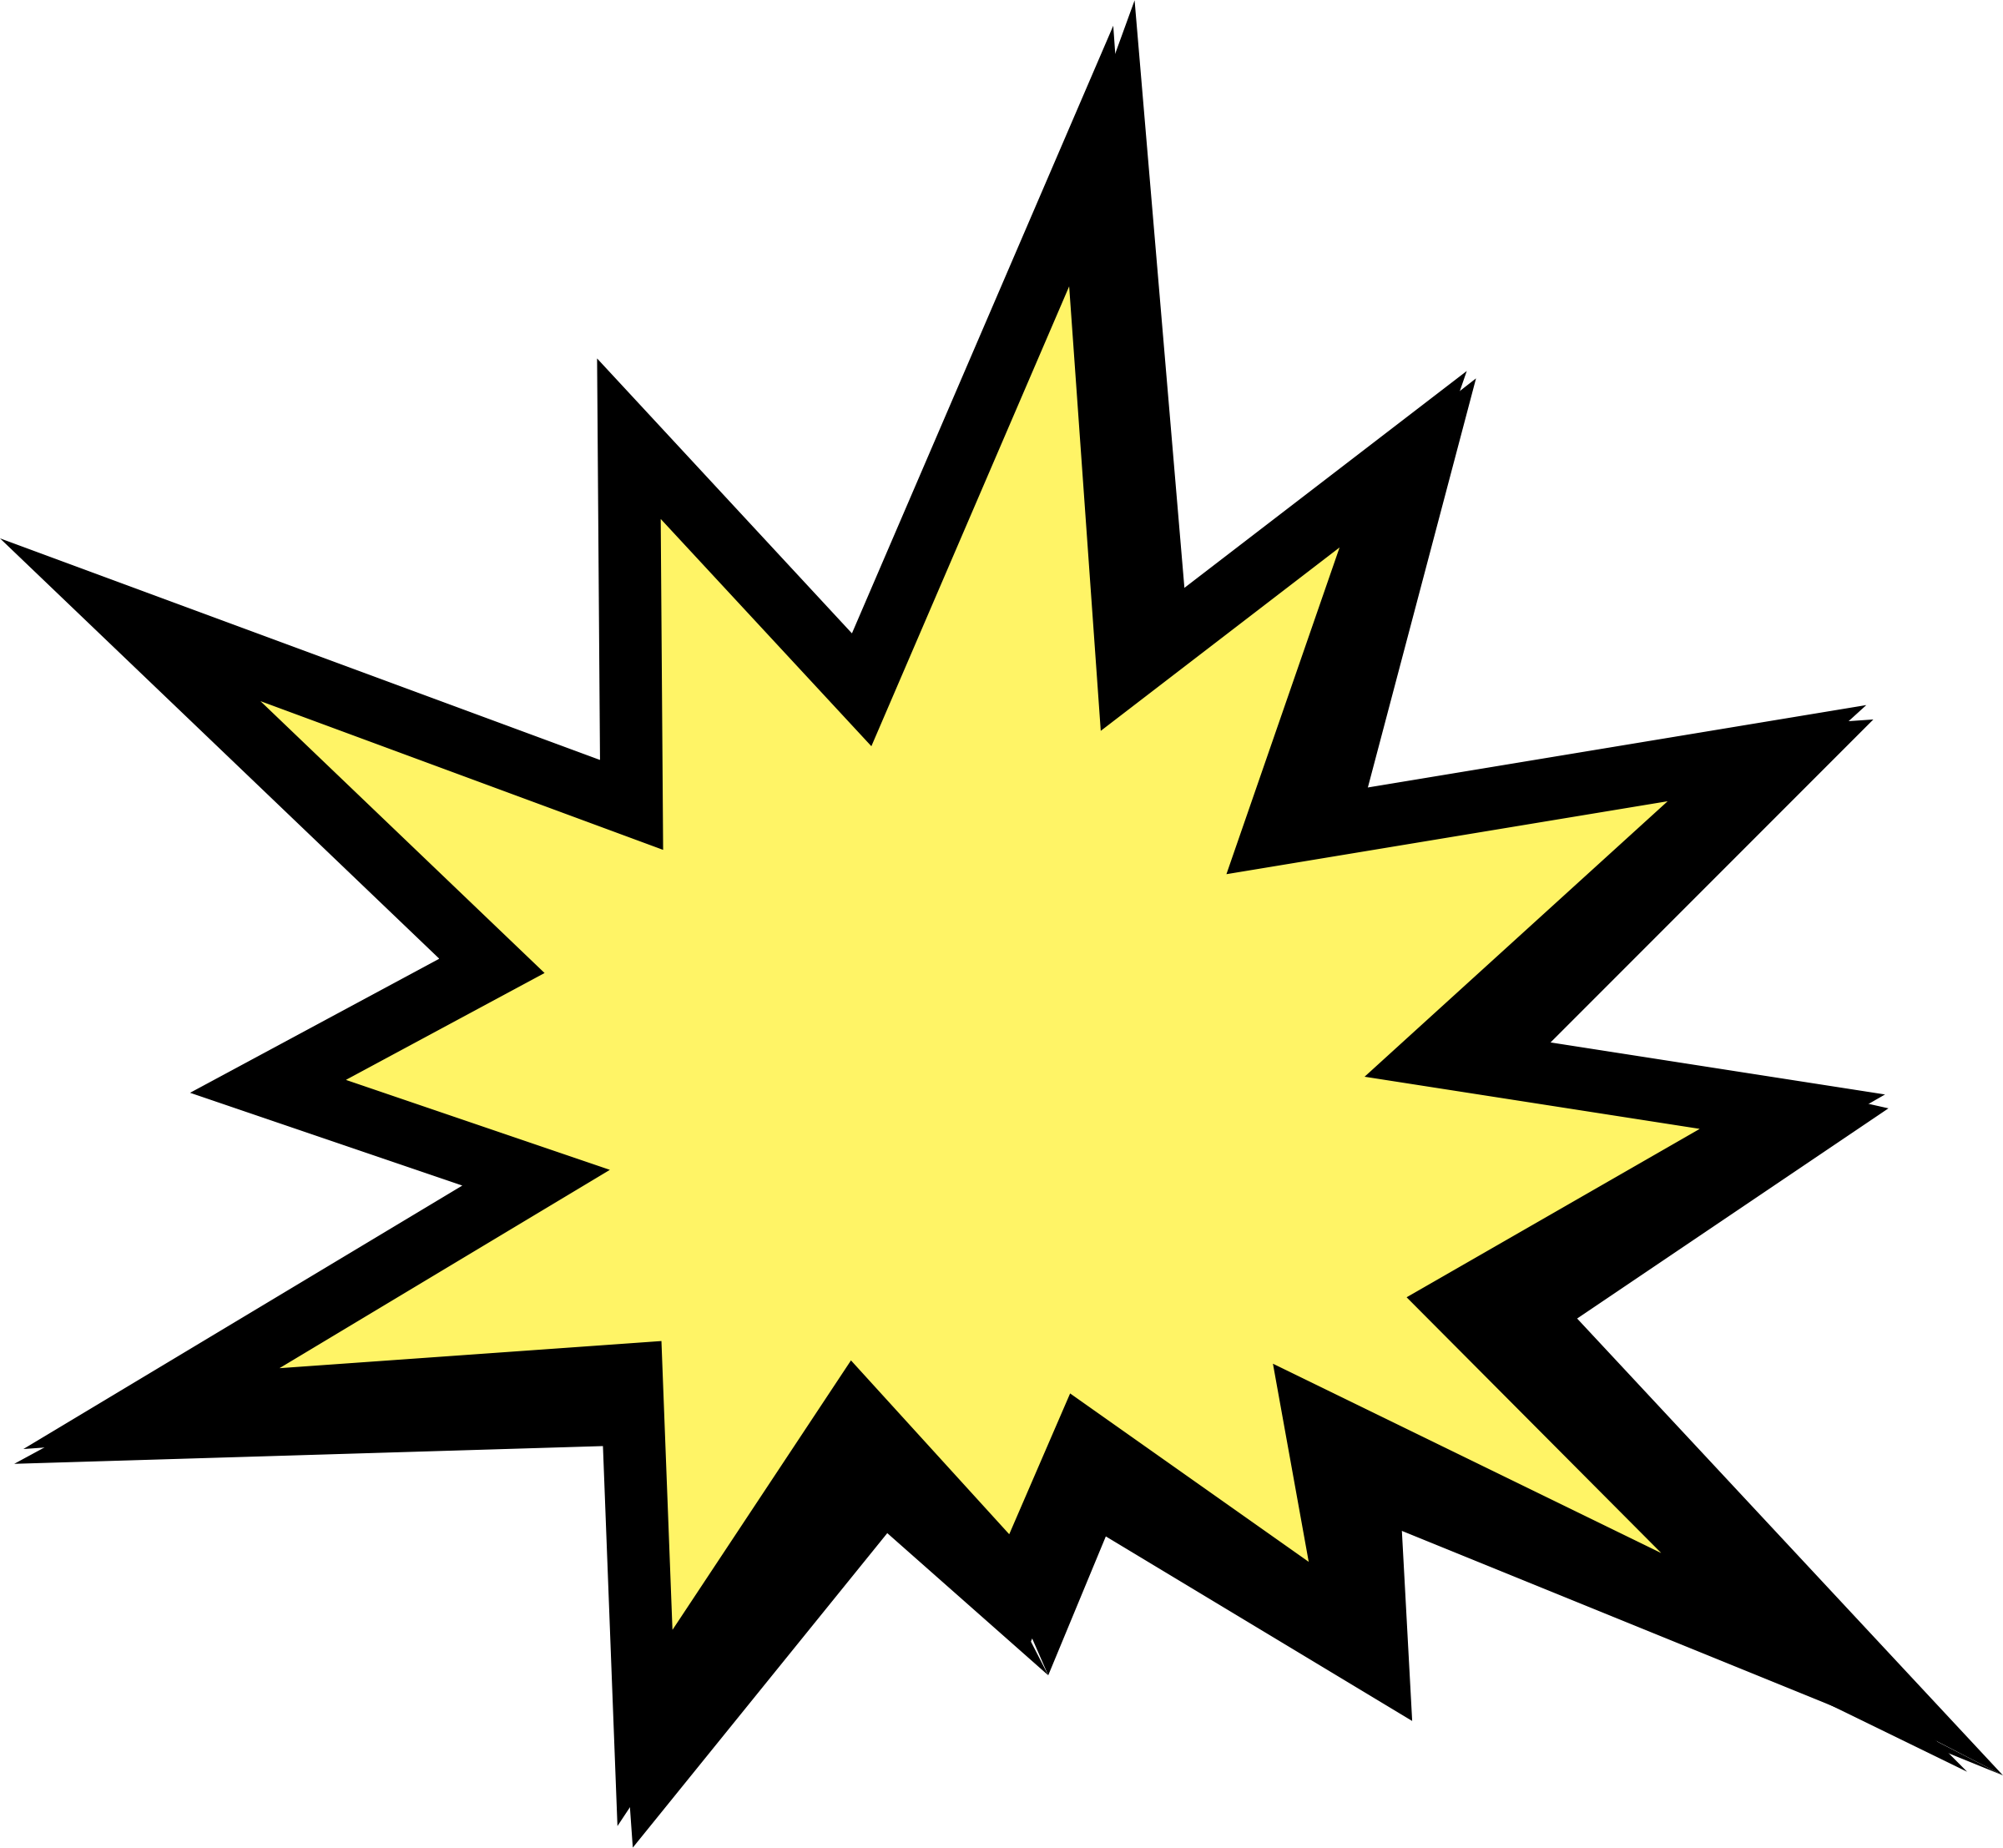 2400x2214 Image For Free Explosion 19 Clip Art Explosion Clip Art Free